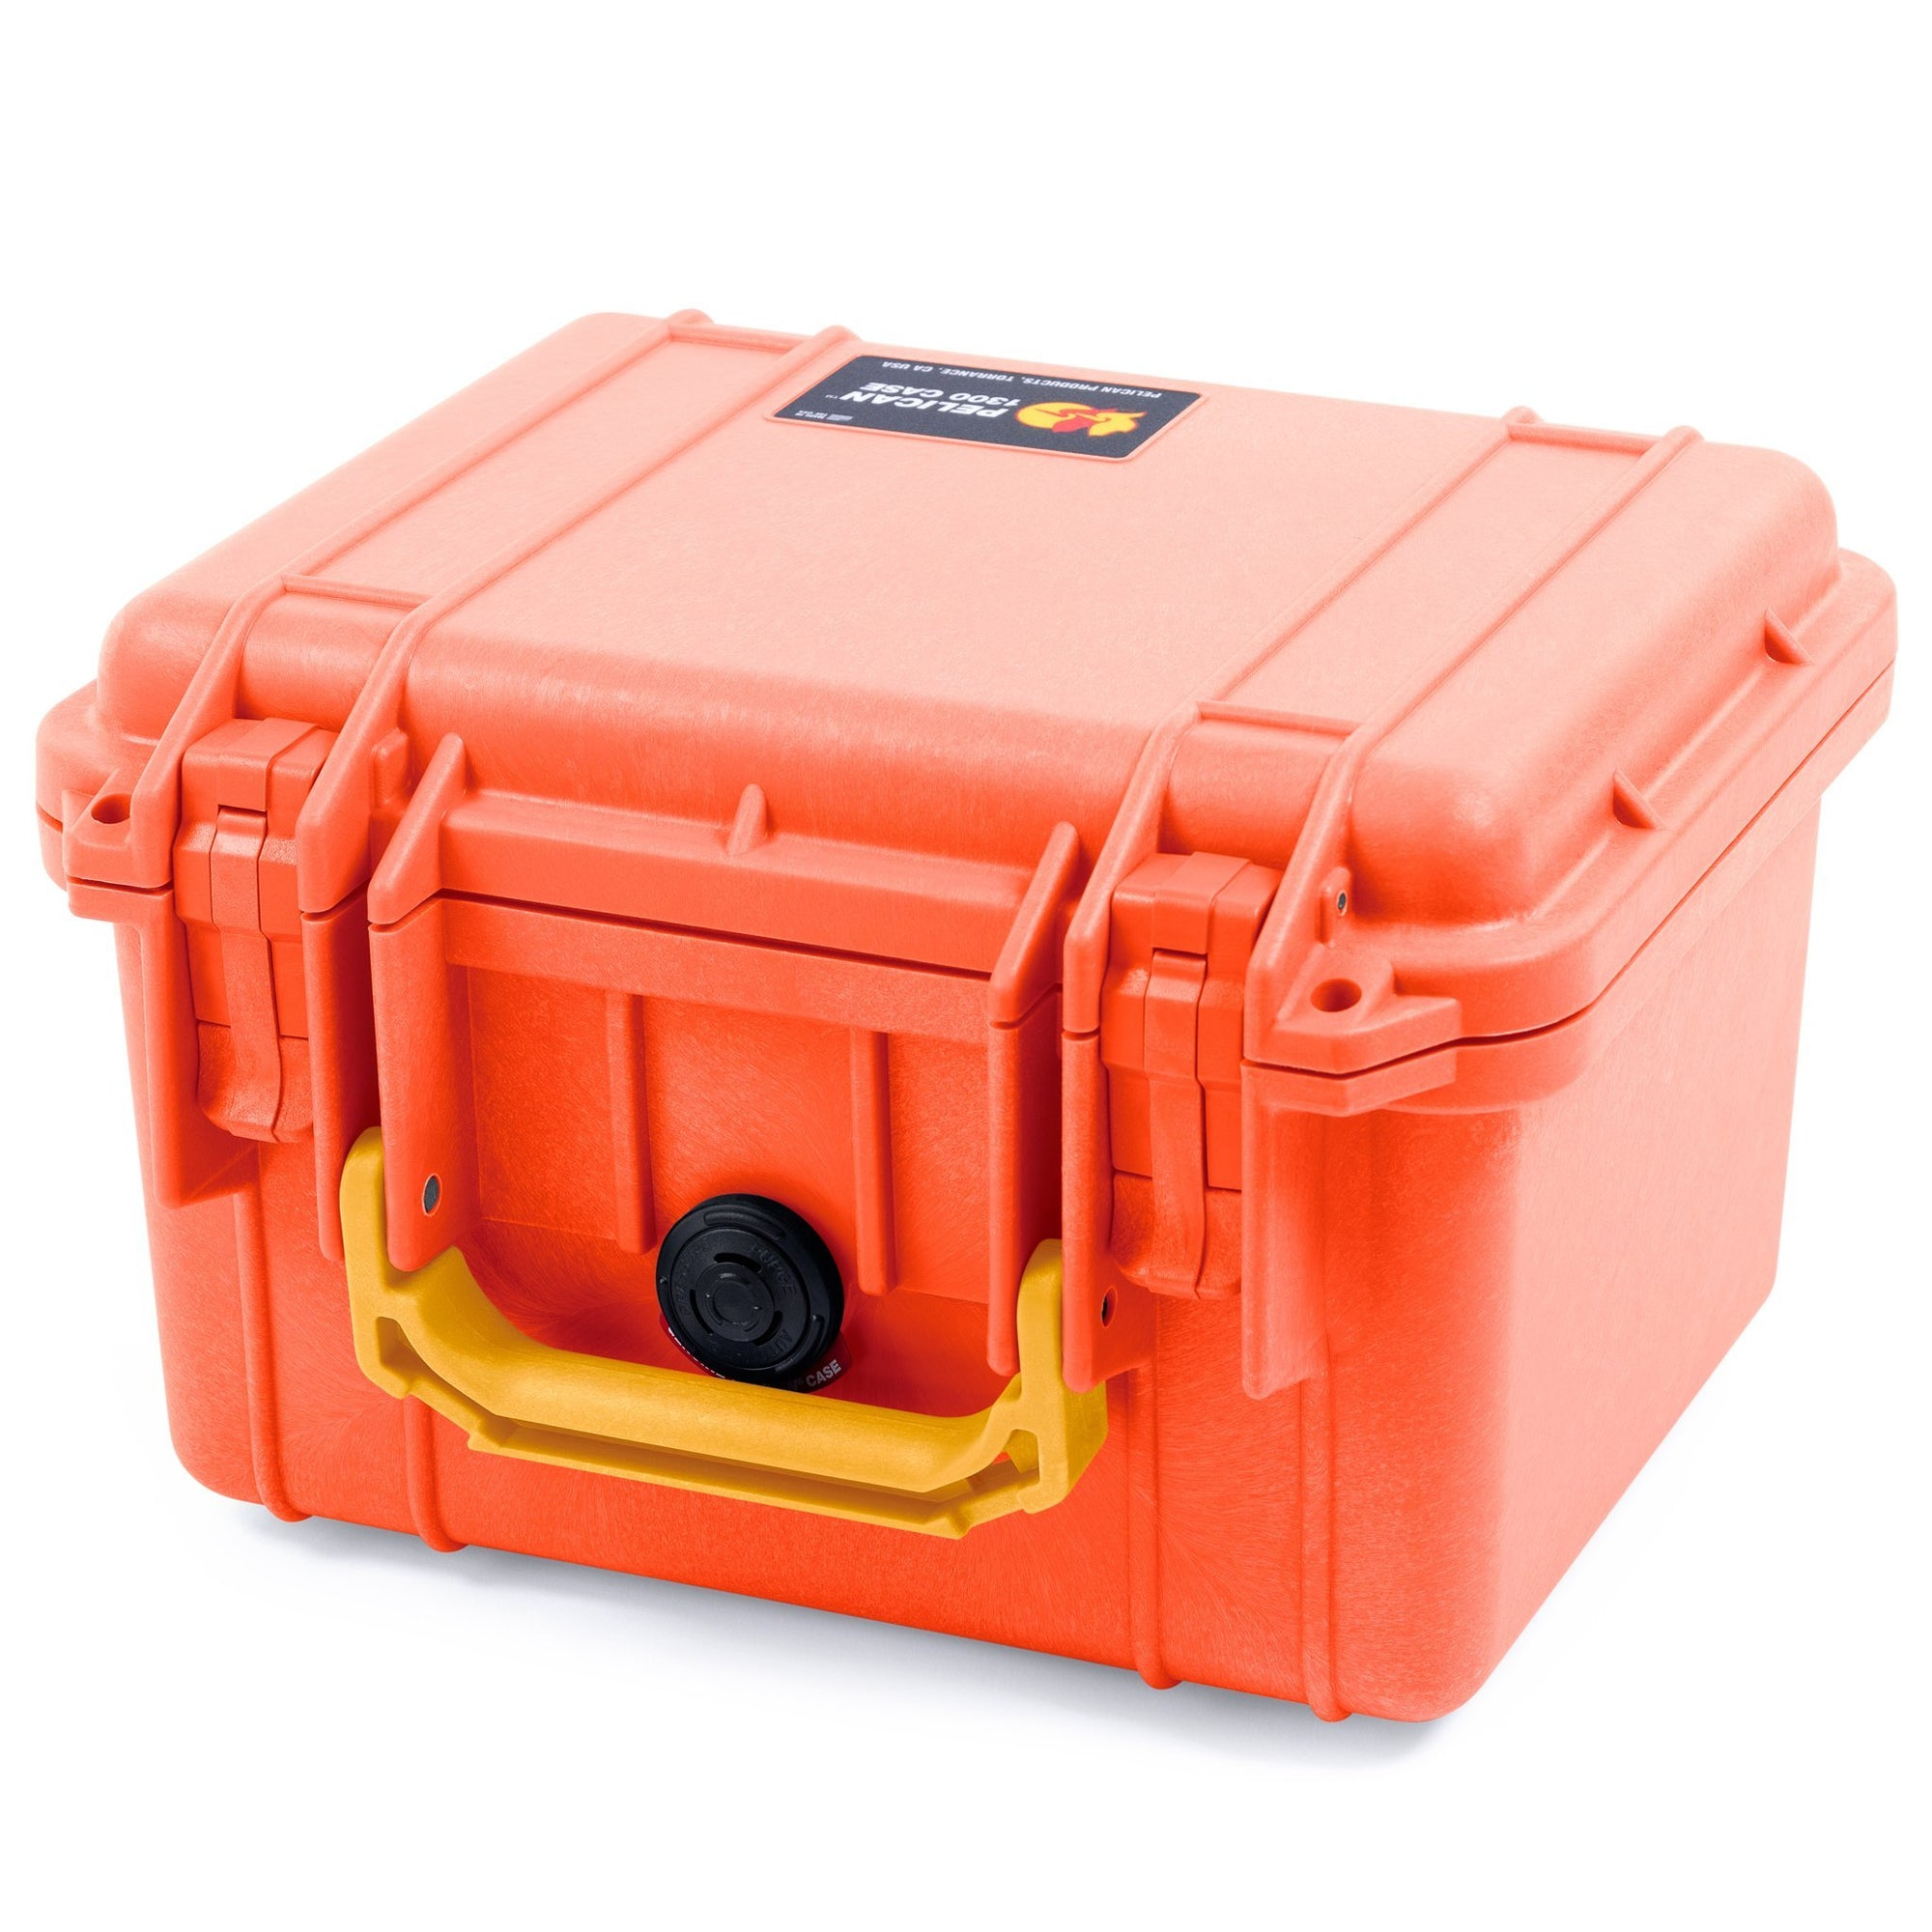 Pelican 1300 Case, Orange with Yellow Handle - Pelican Color Case